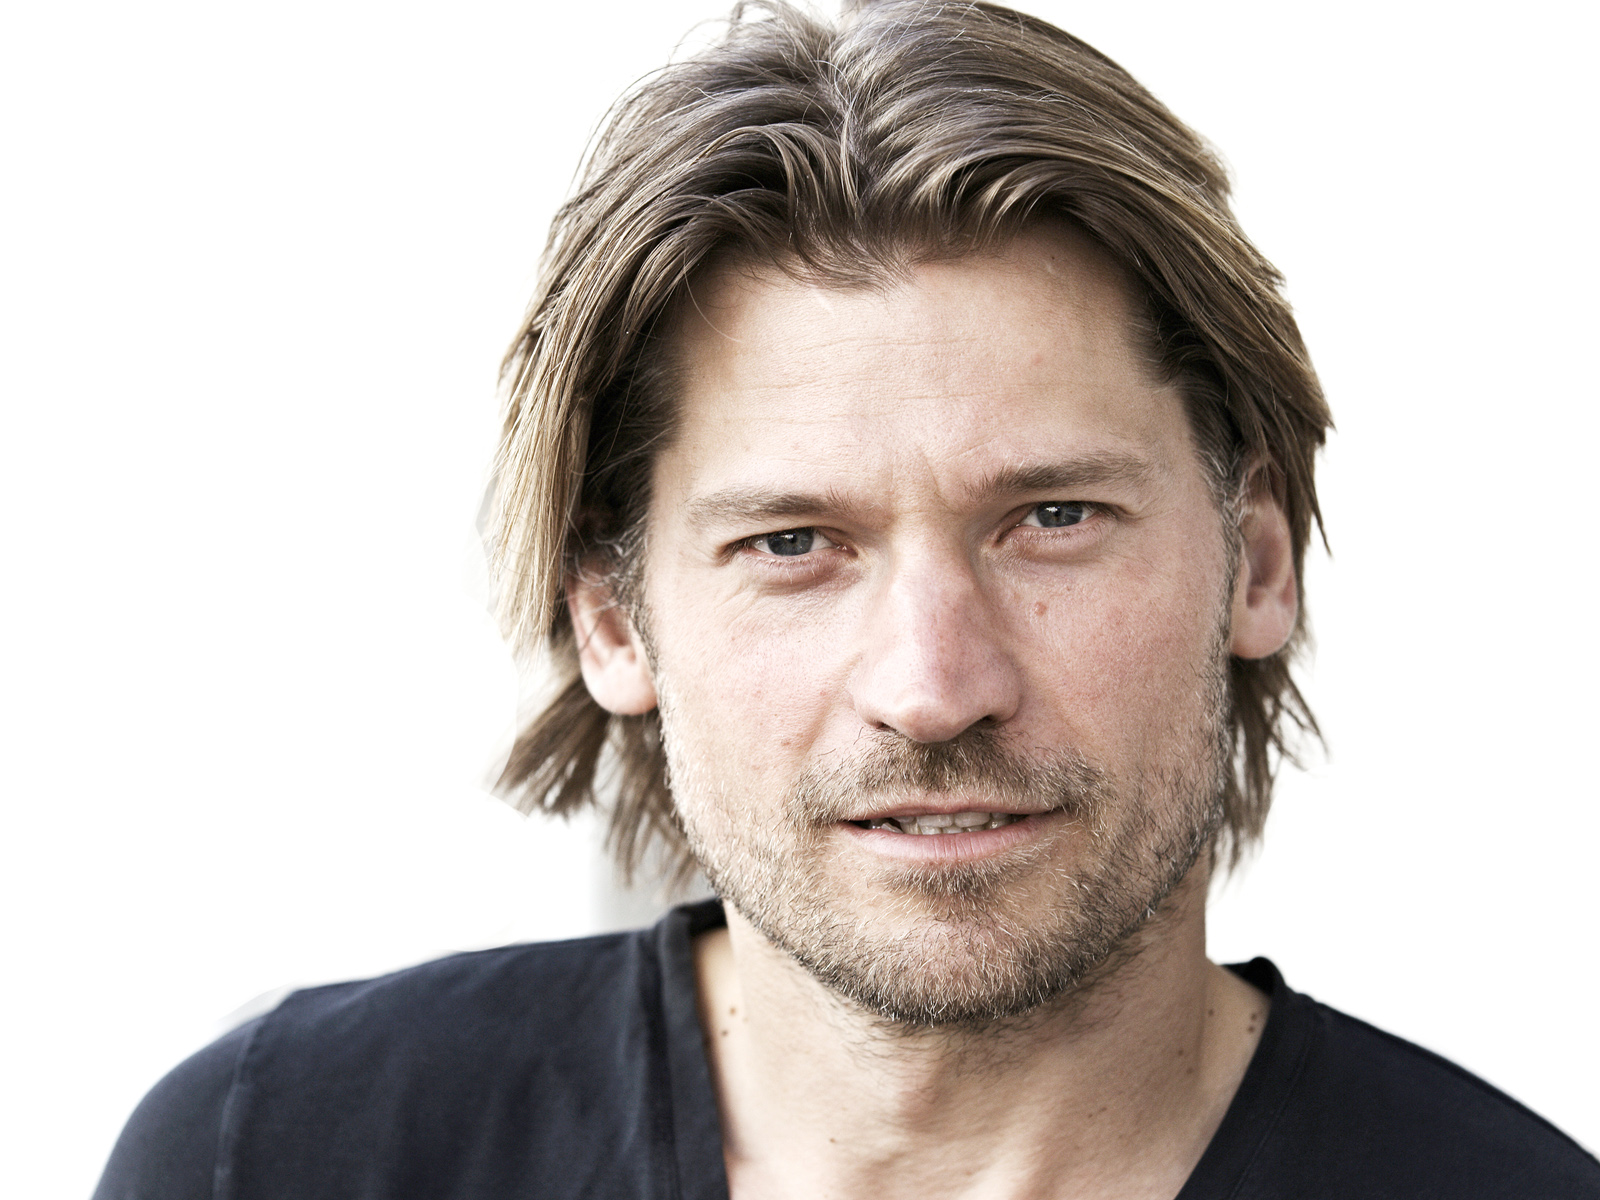 Nikolaj Coster-Waldau